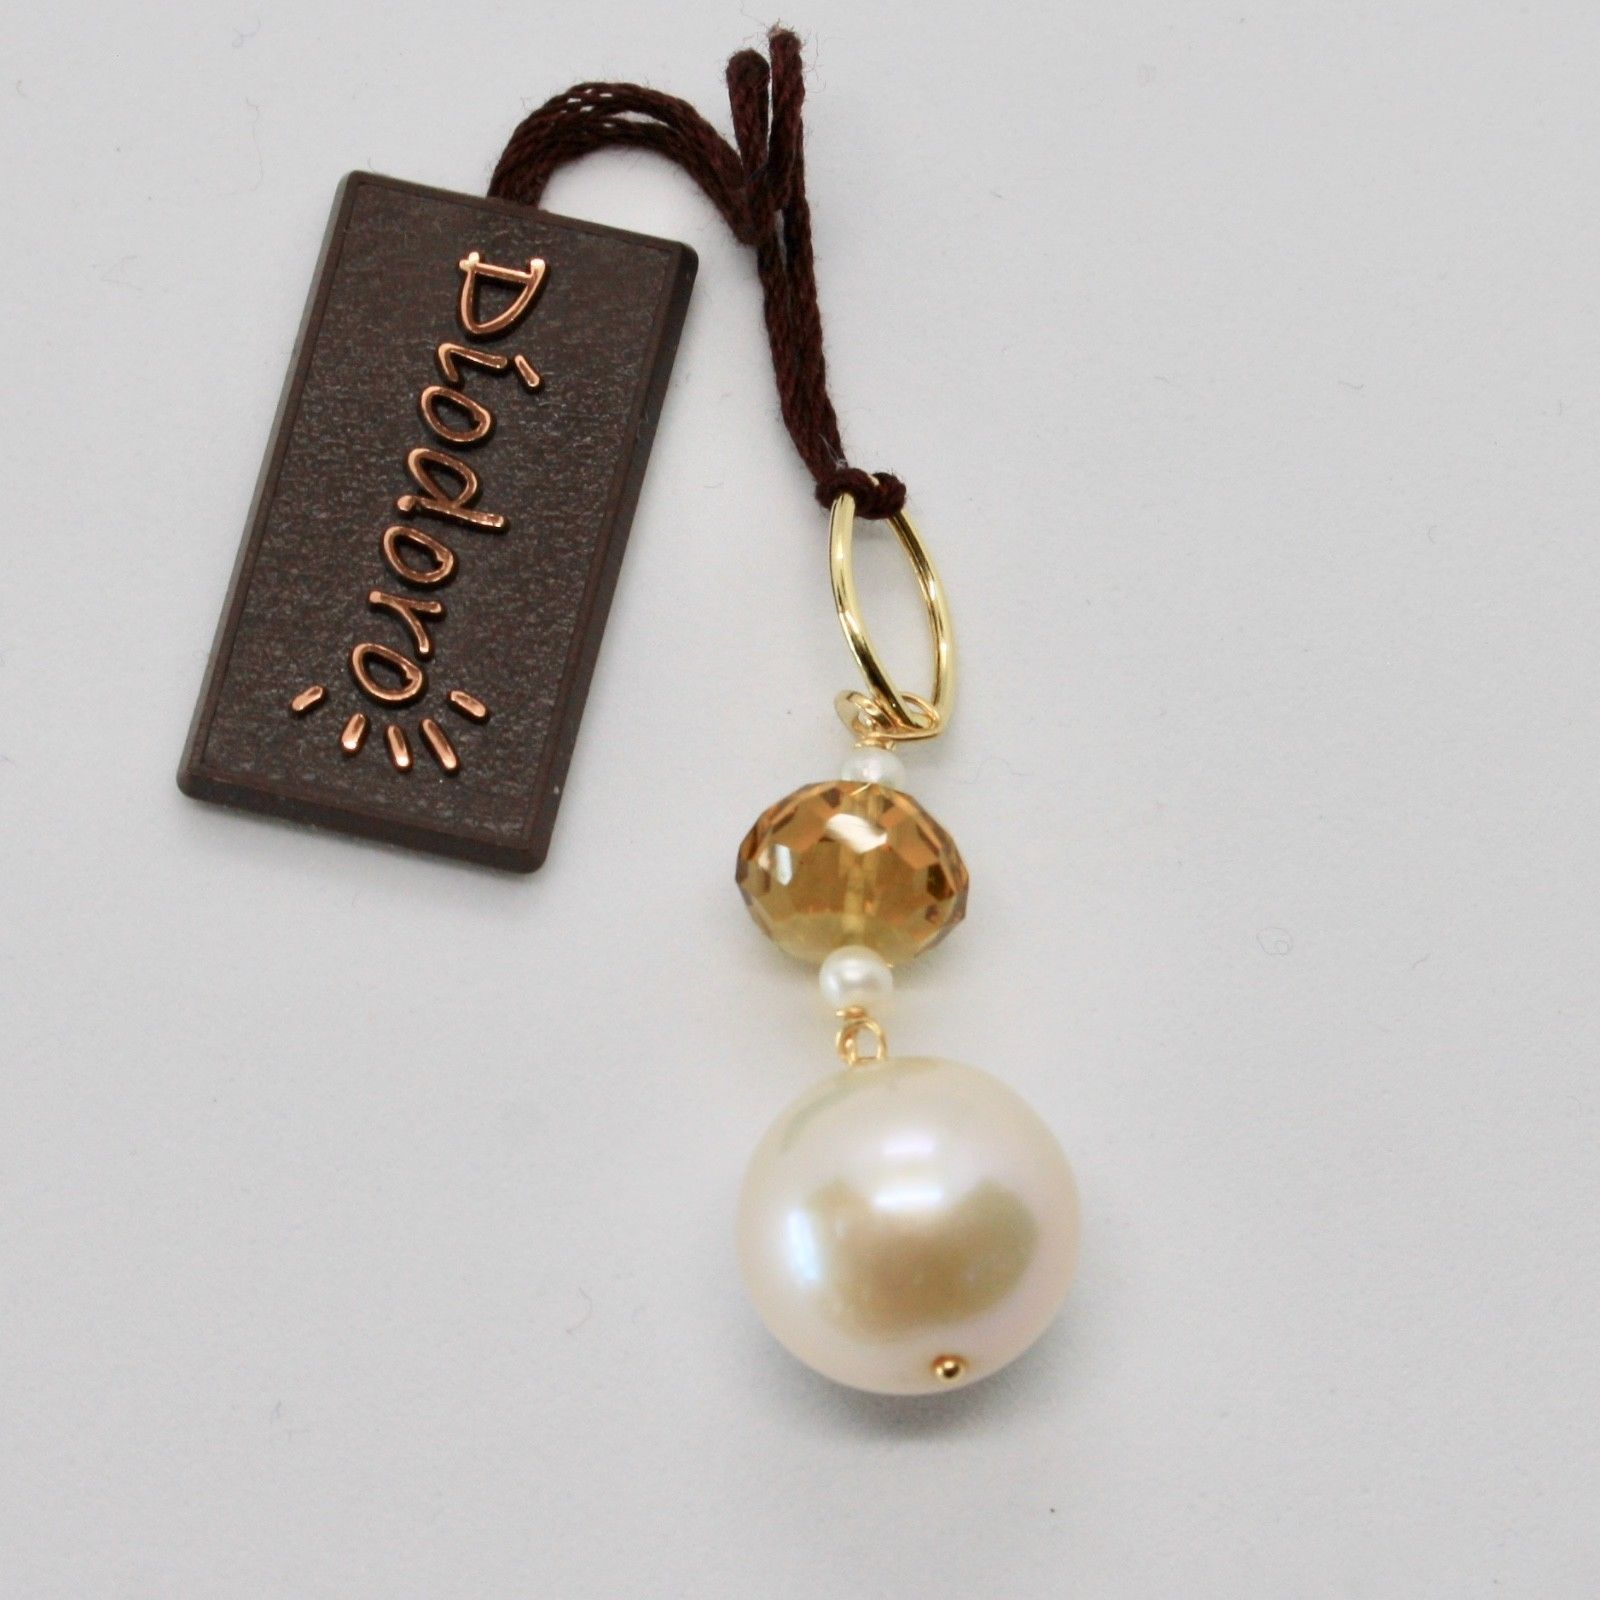 SOLID 18K YELLOW GOLD PENDANT WITH WHITE FW PEARL AND BEER QUARTZ MADE IN ITALY